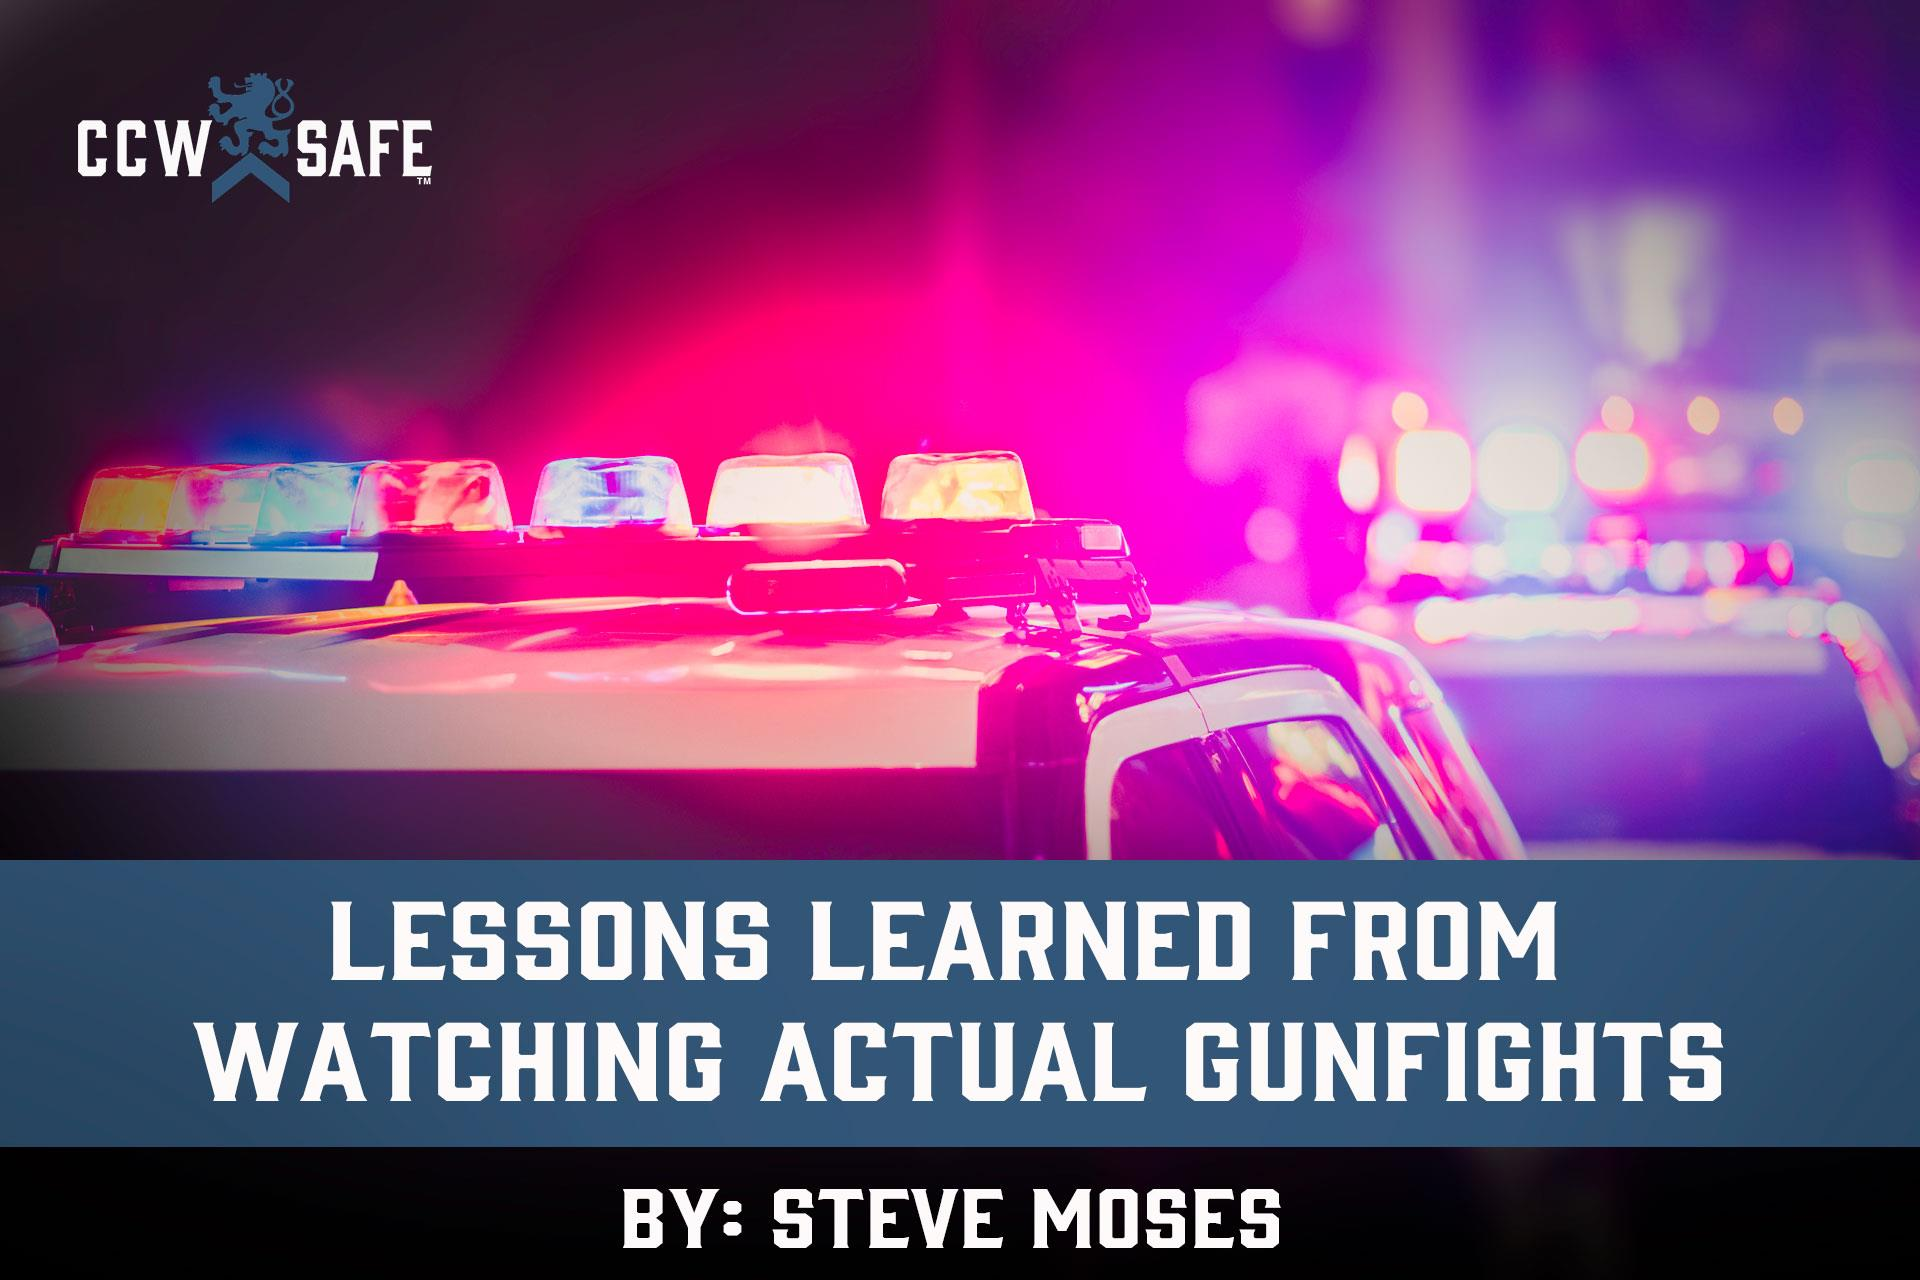 LESSONS LEARNED FROM WATCHING ACTUAL GUNFIGHTS